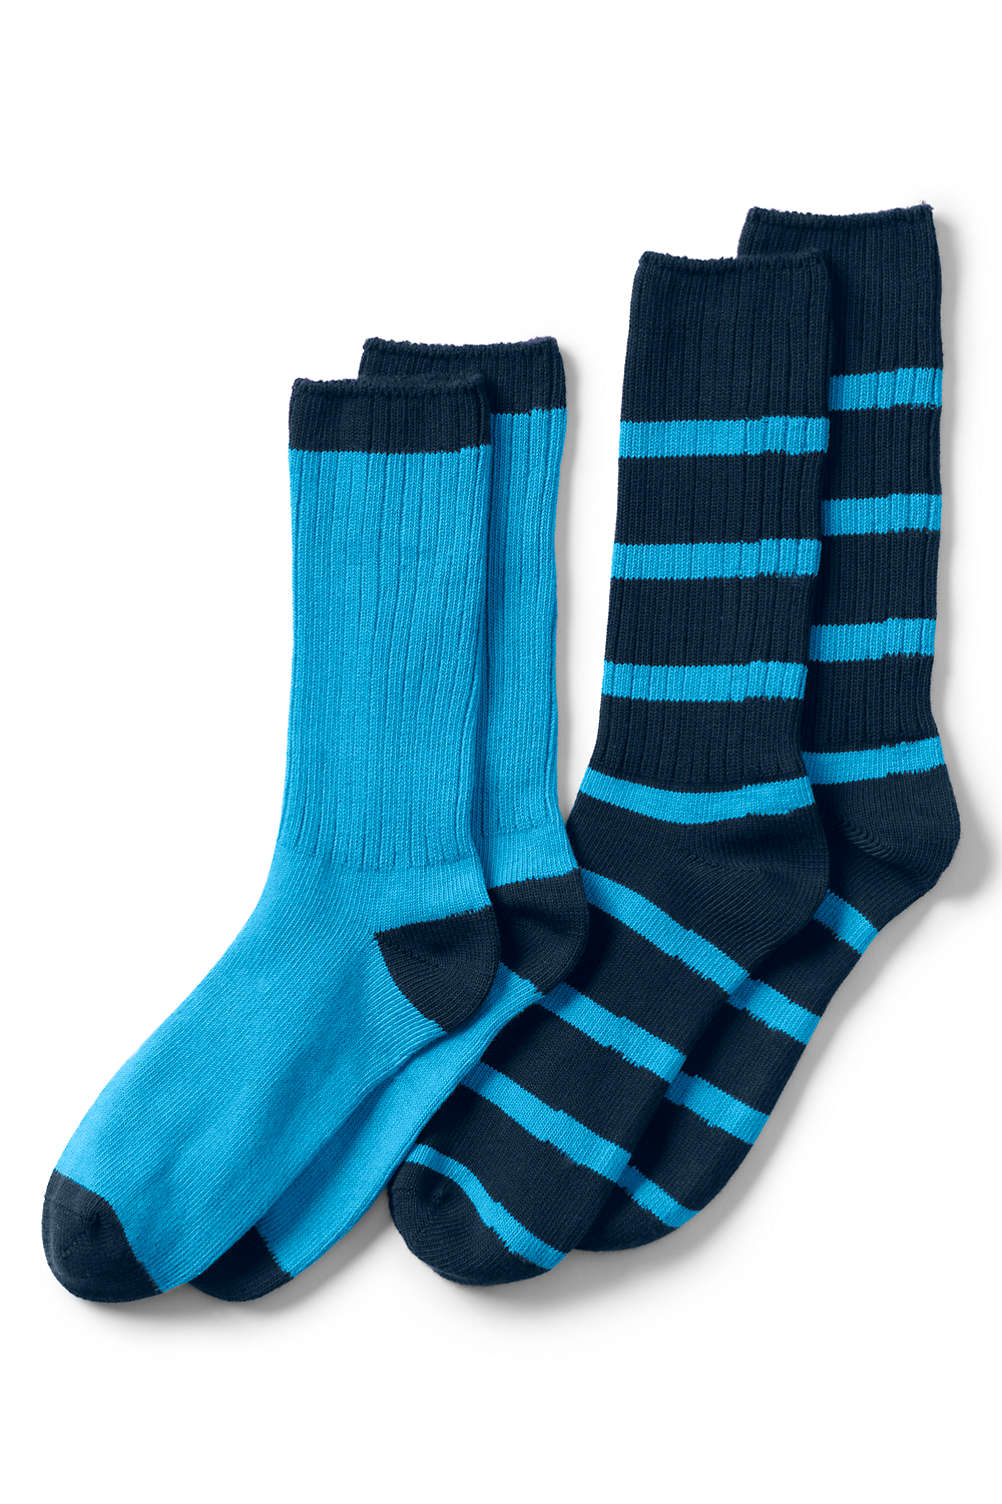 08abea8a97 Men's Seamless Toe Cotton Crew Socks (2-pack) from Lands' End